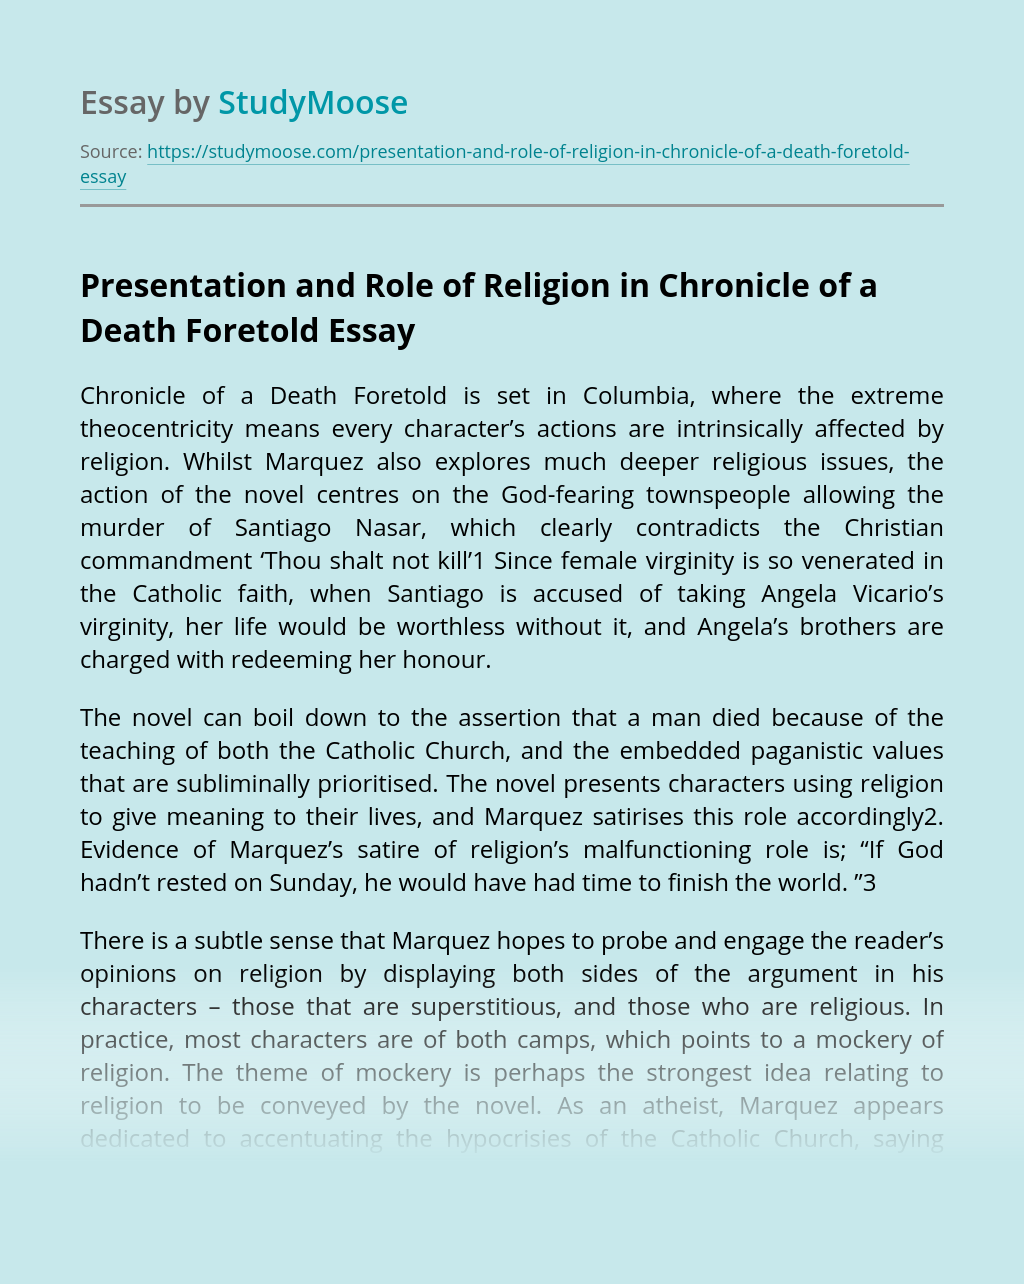 Presentation and Role of Religion in Chronicle of a Death Foretold